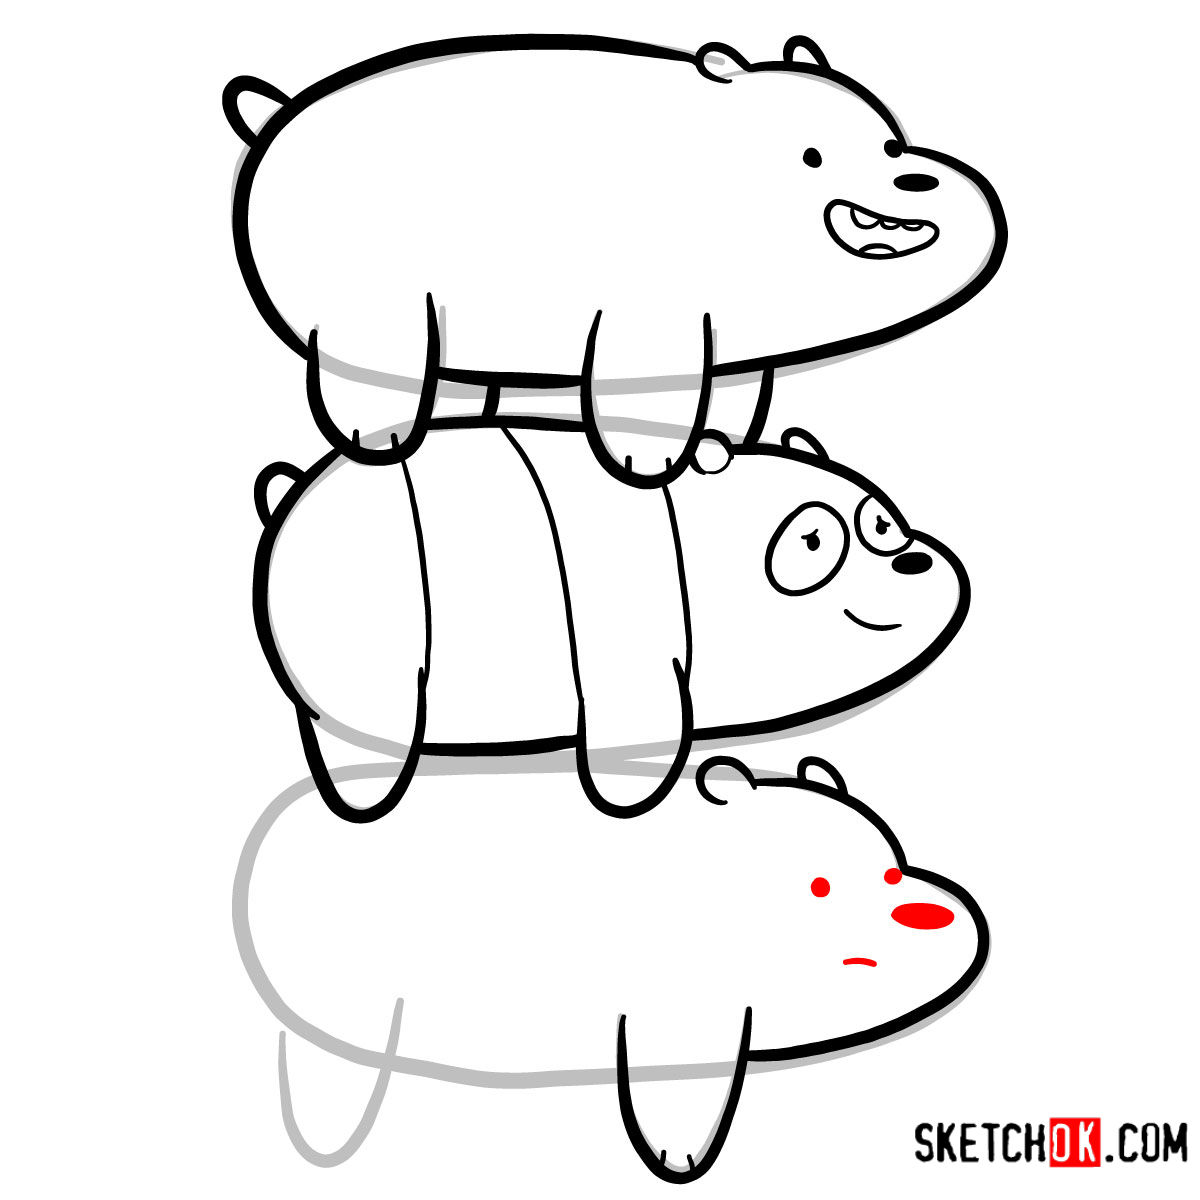 How to draw the bears standing on each others back | We Bare Bears - step 12